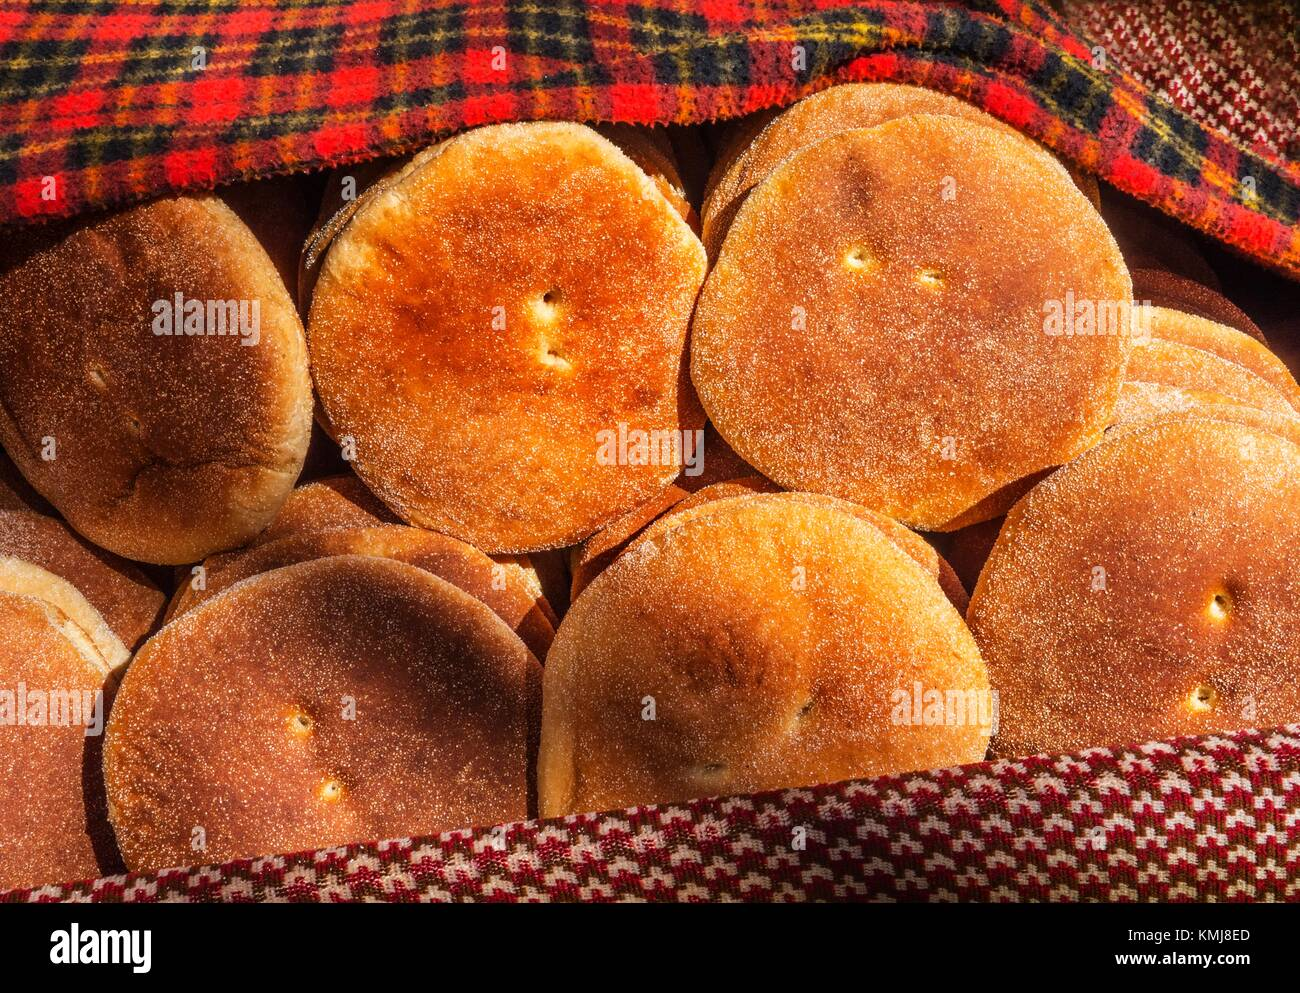 Morocco, Food, 'Kesra' typical round bread. - Stock Image